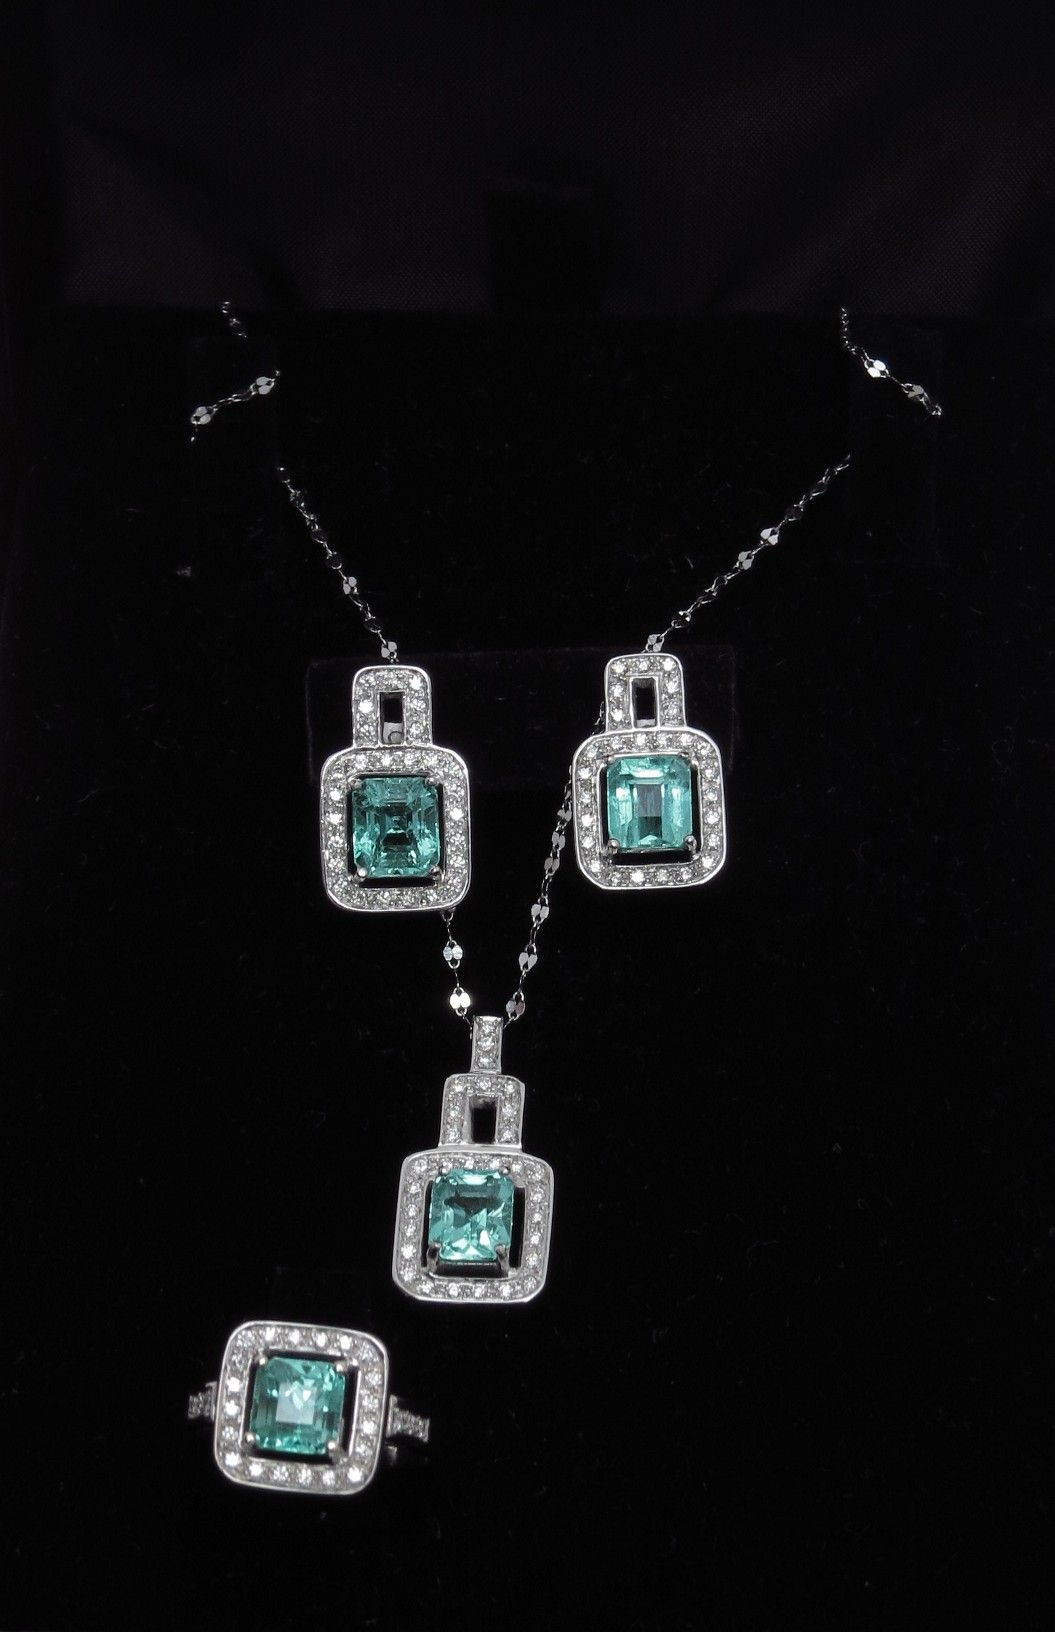 Georgeous Colombian Emeralds set.  Contact me if you are interested.